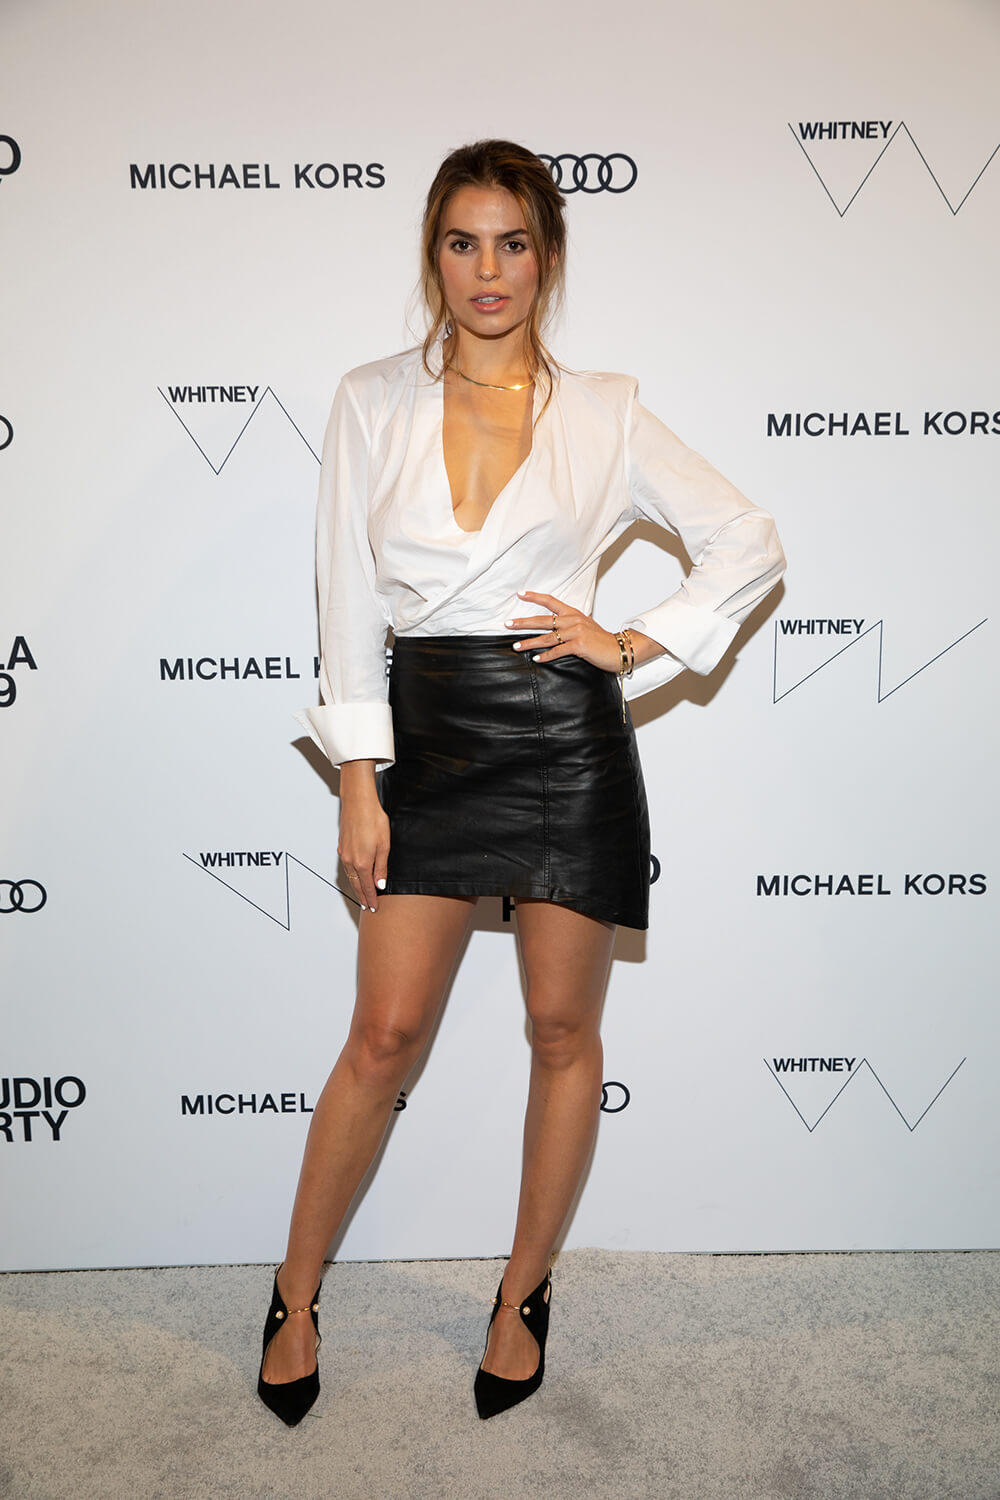 Brooks Nader attends The Whitney Museum Annual Studio Party